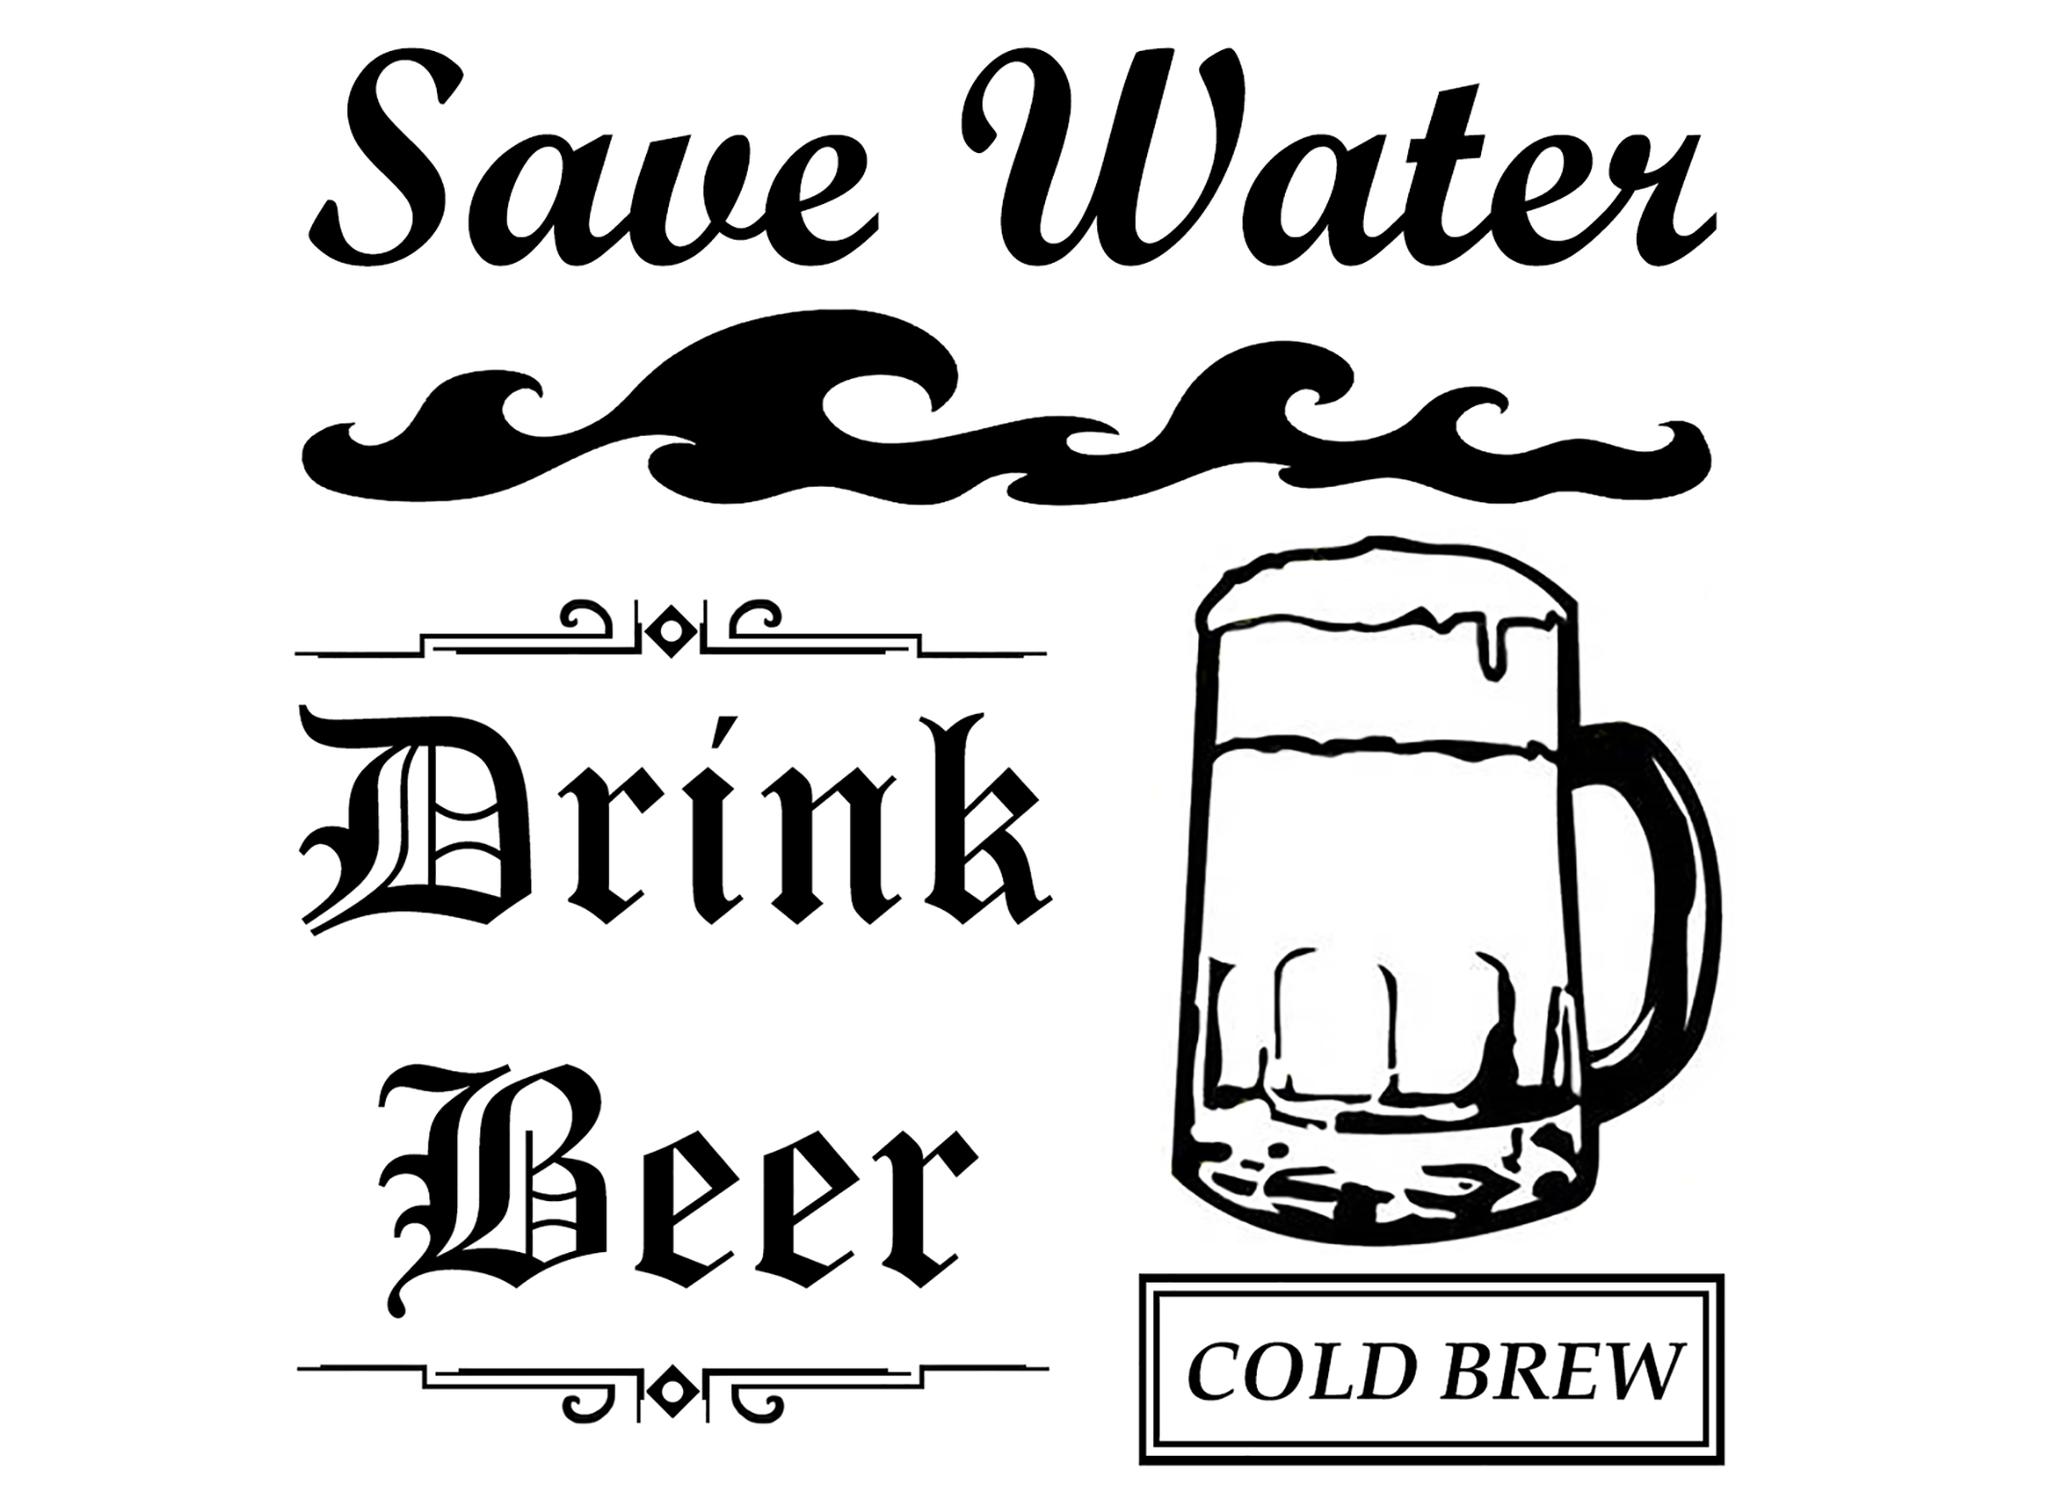 Save water 3 3 4 drink beer 640 or wine 641 fused glass decal